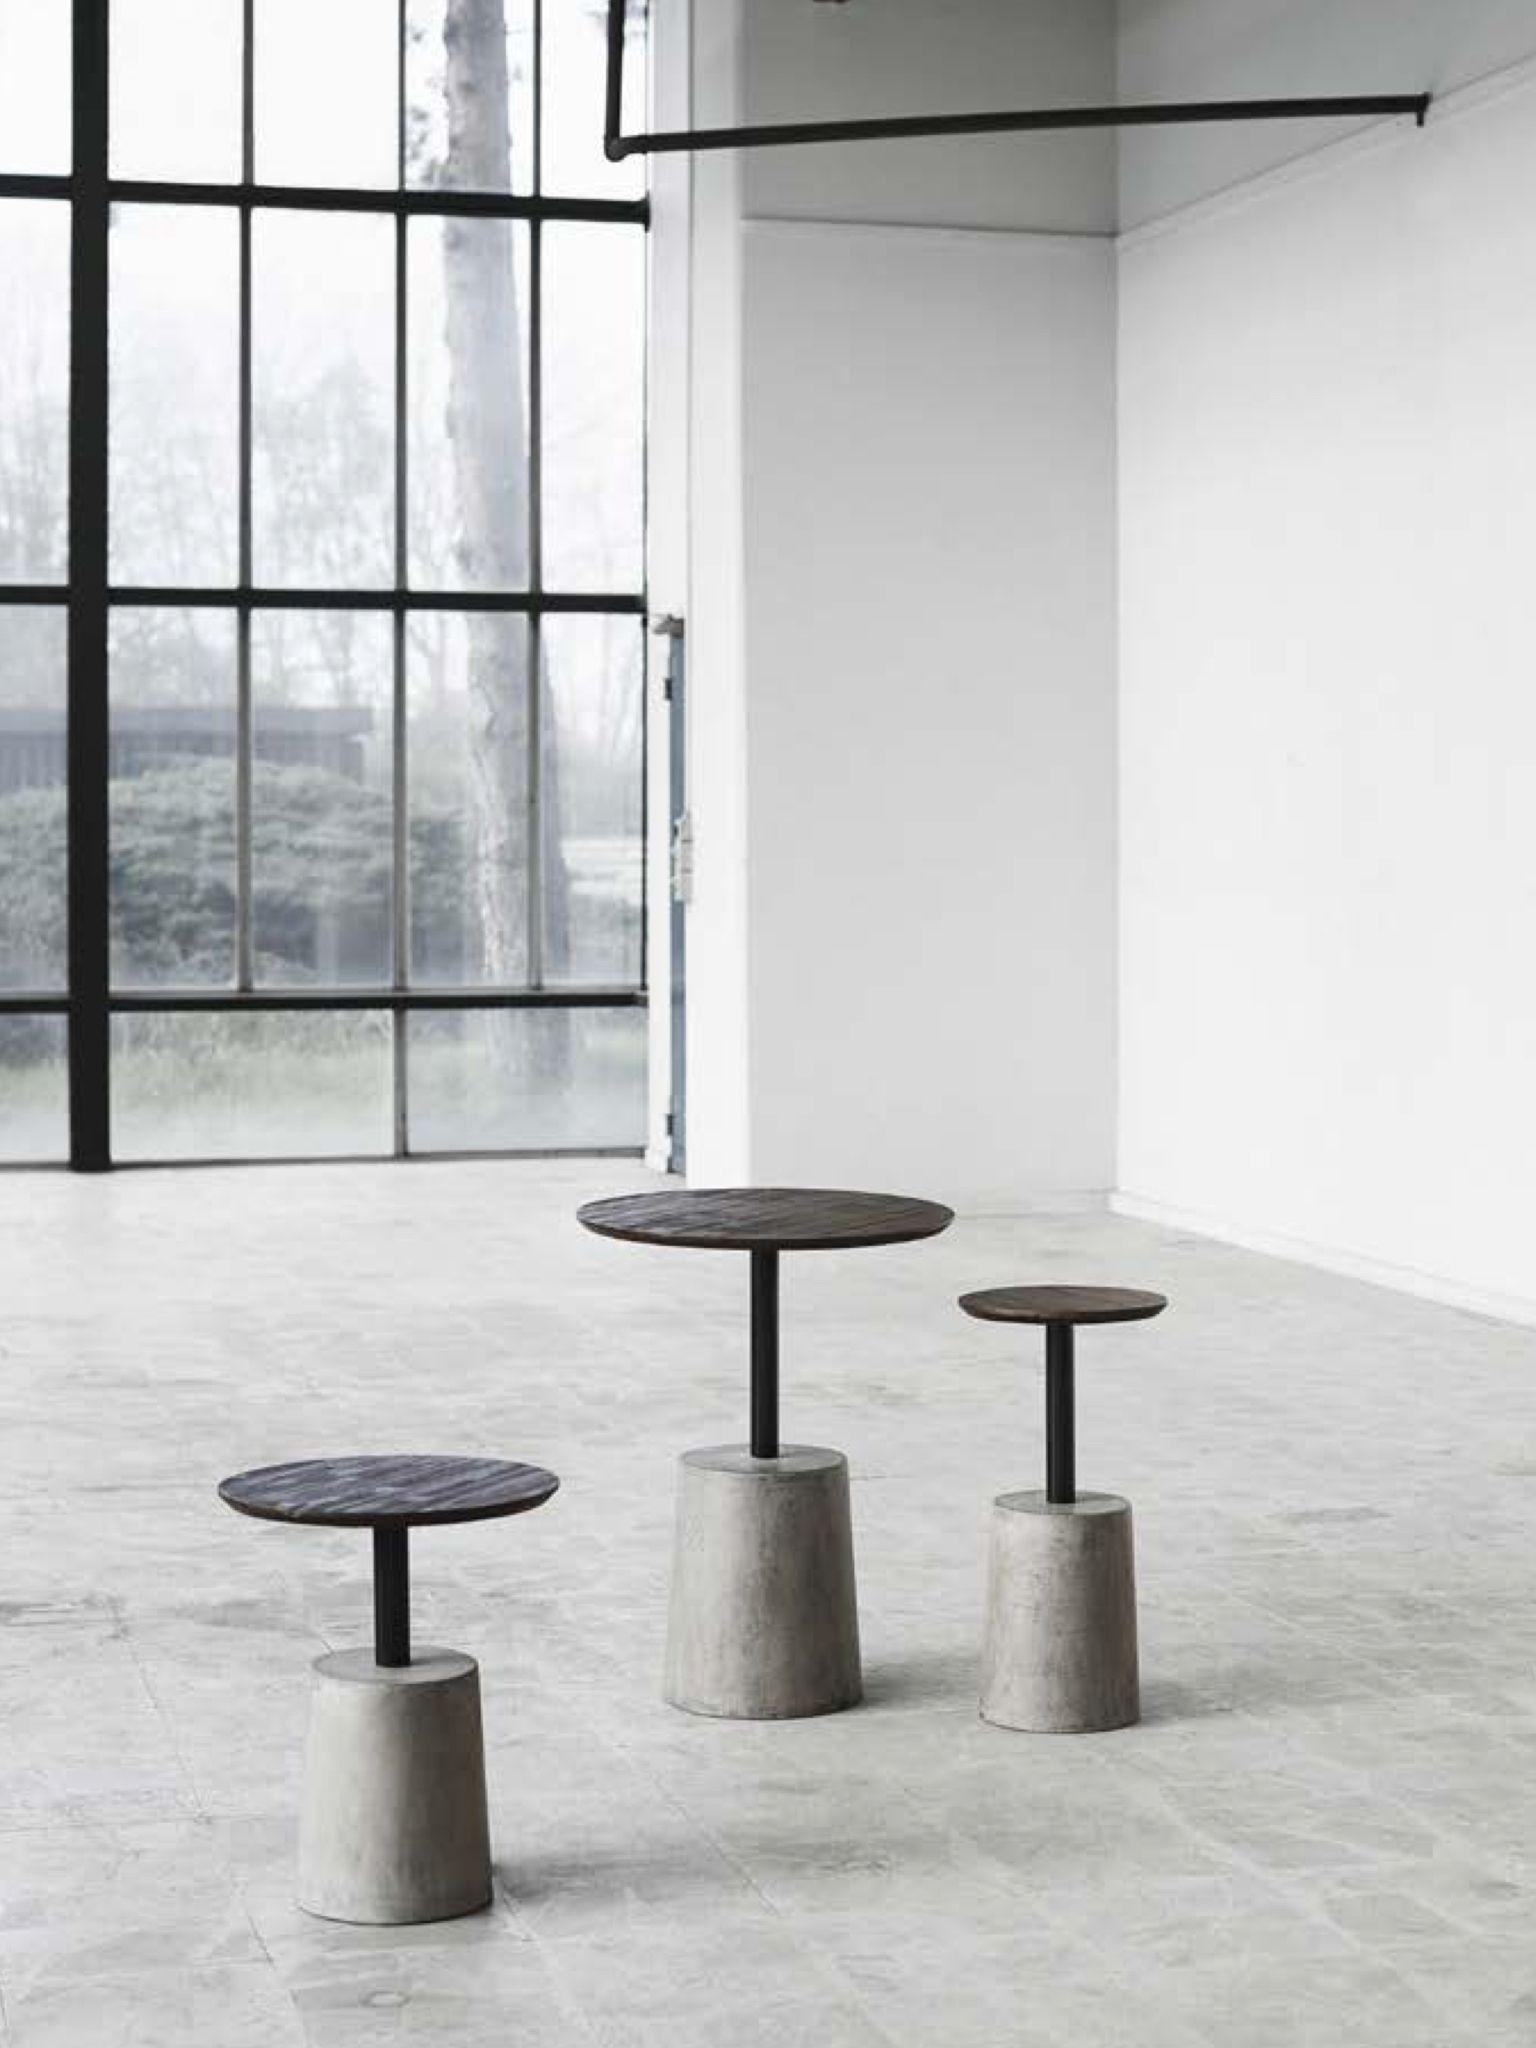 Wood'n concrete tables